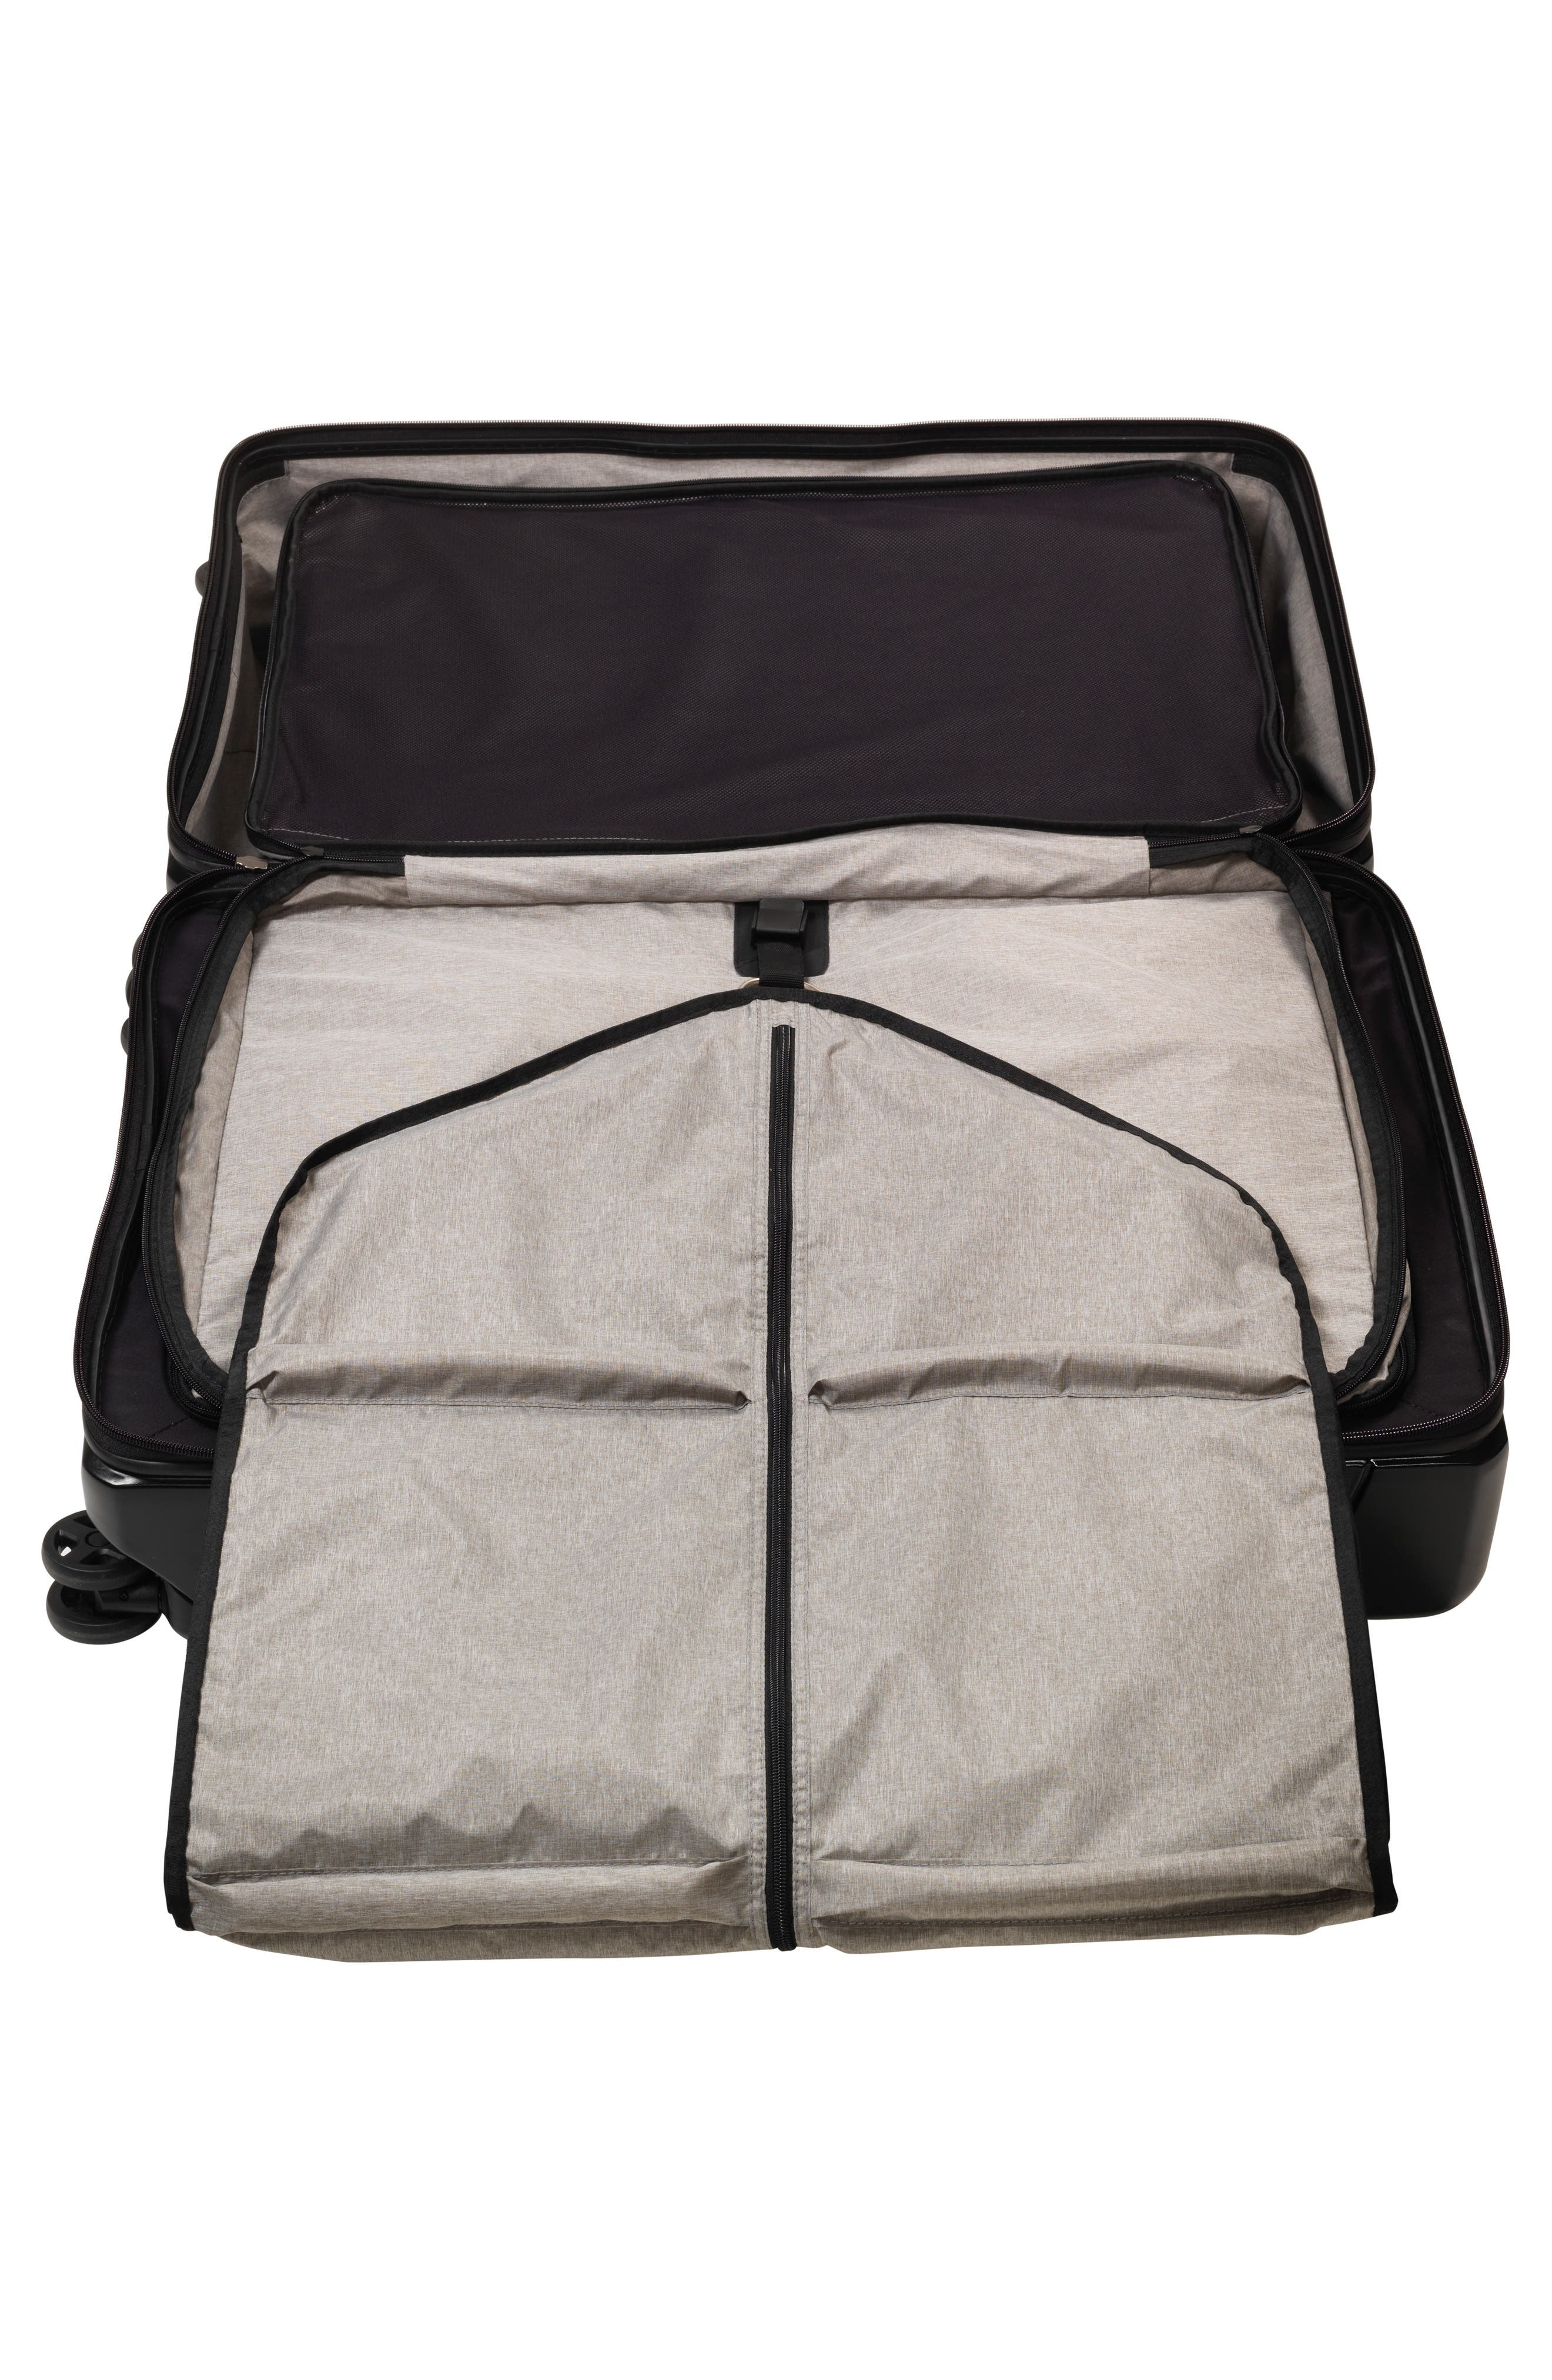 Lexicon Frequent Flyer 29-Inch Wheeled Suitcase,                             Alternate thumbnail 4, color,